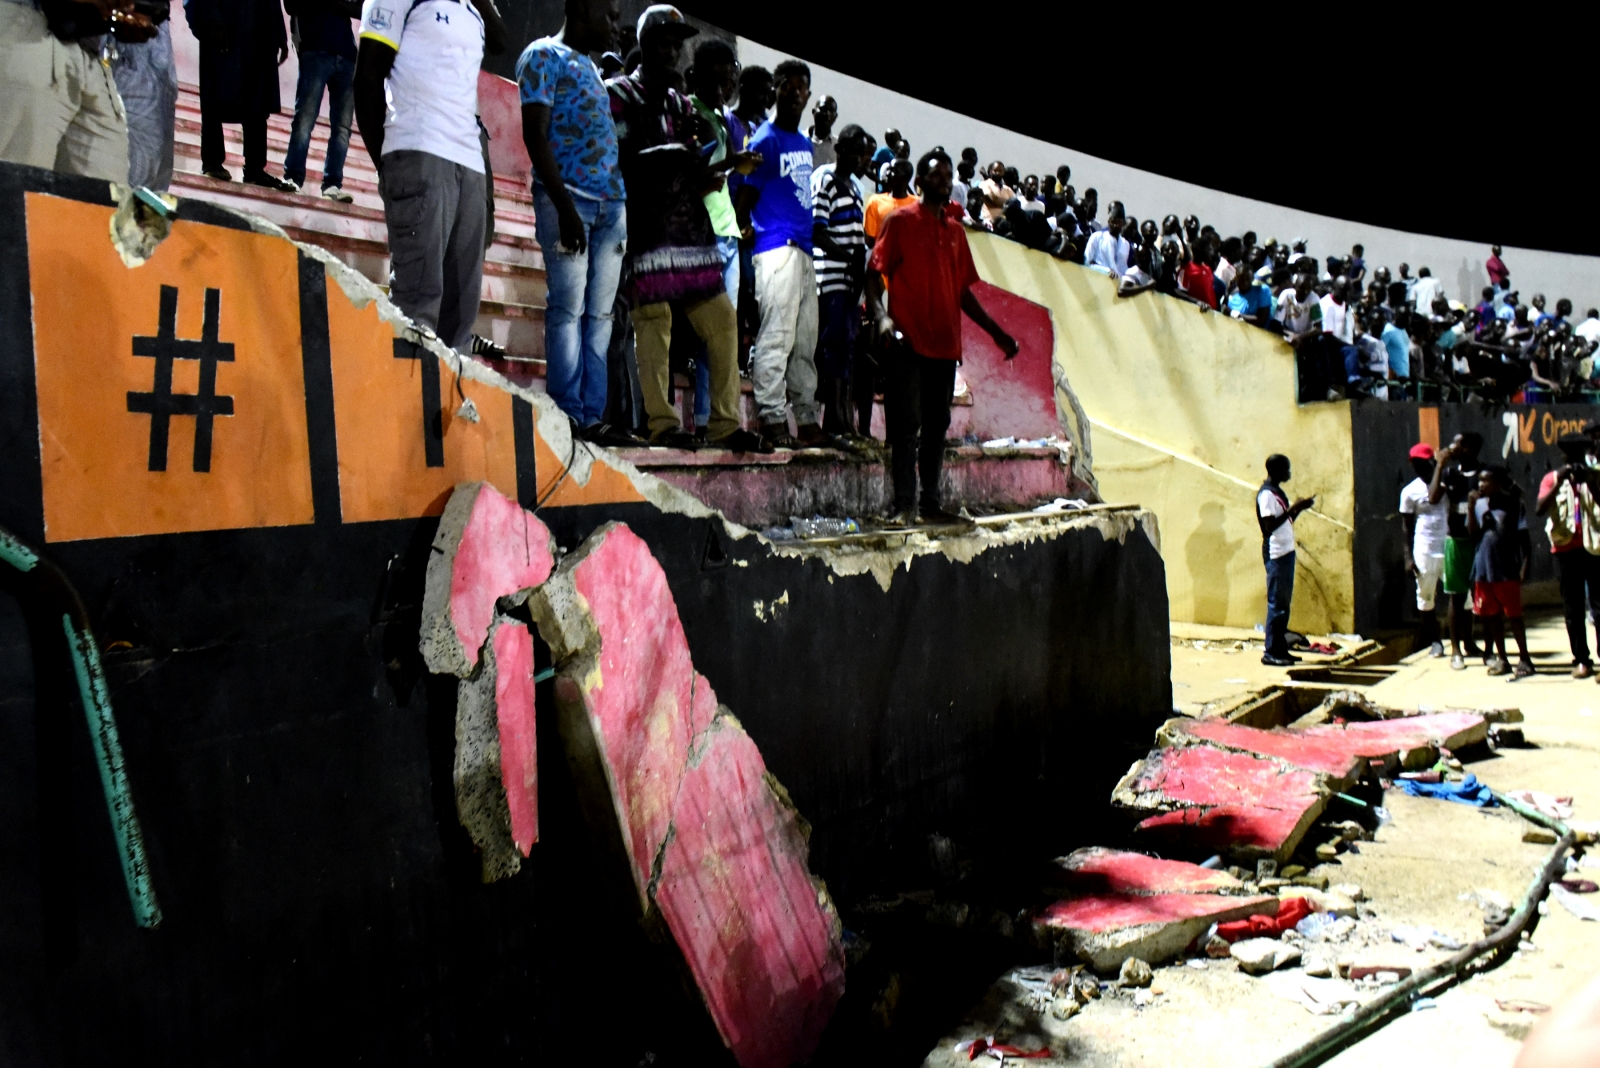 Eight killed after Senegal soccer stadium wall collapse and stampede, witnesses say